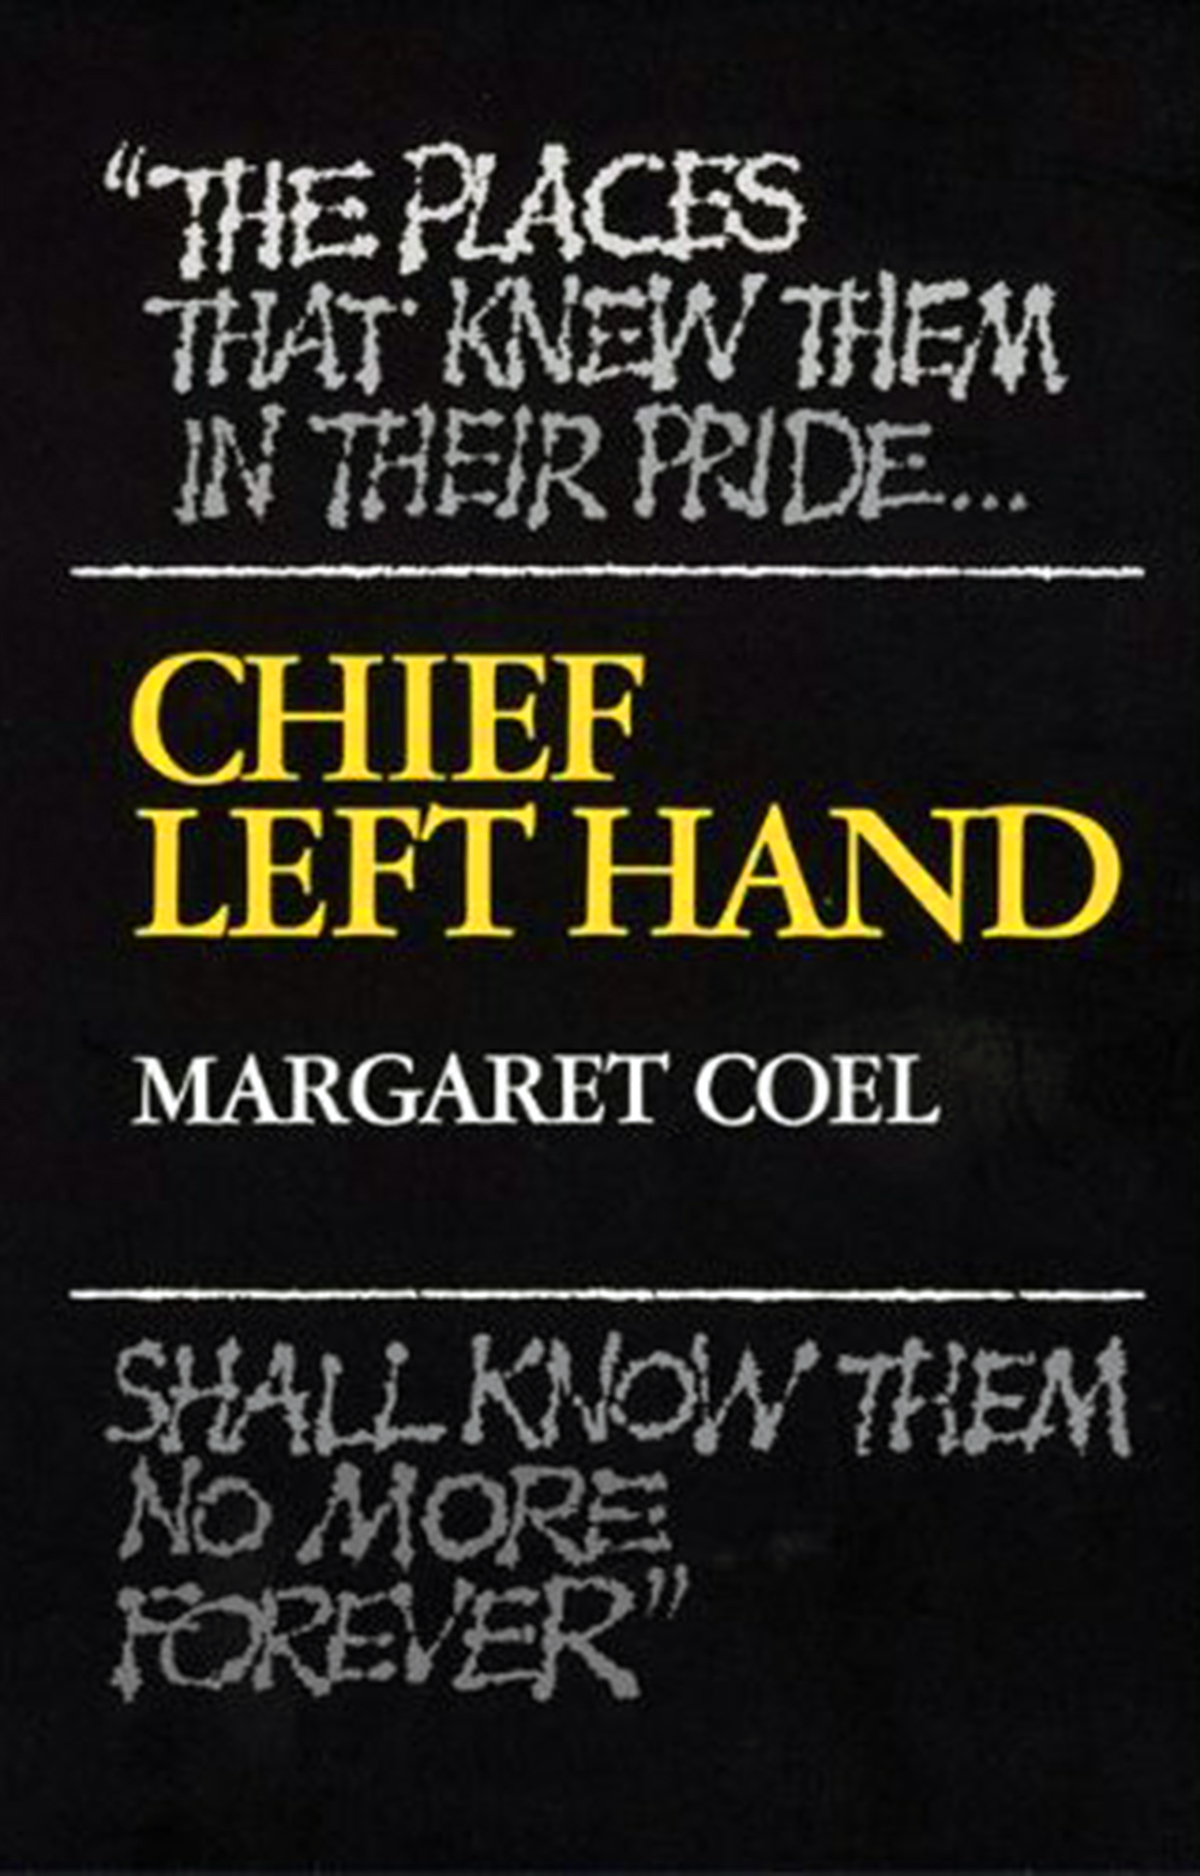 chief left hand.jpg